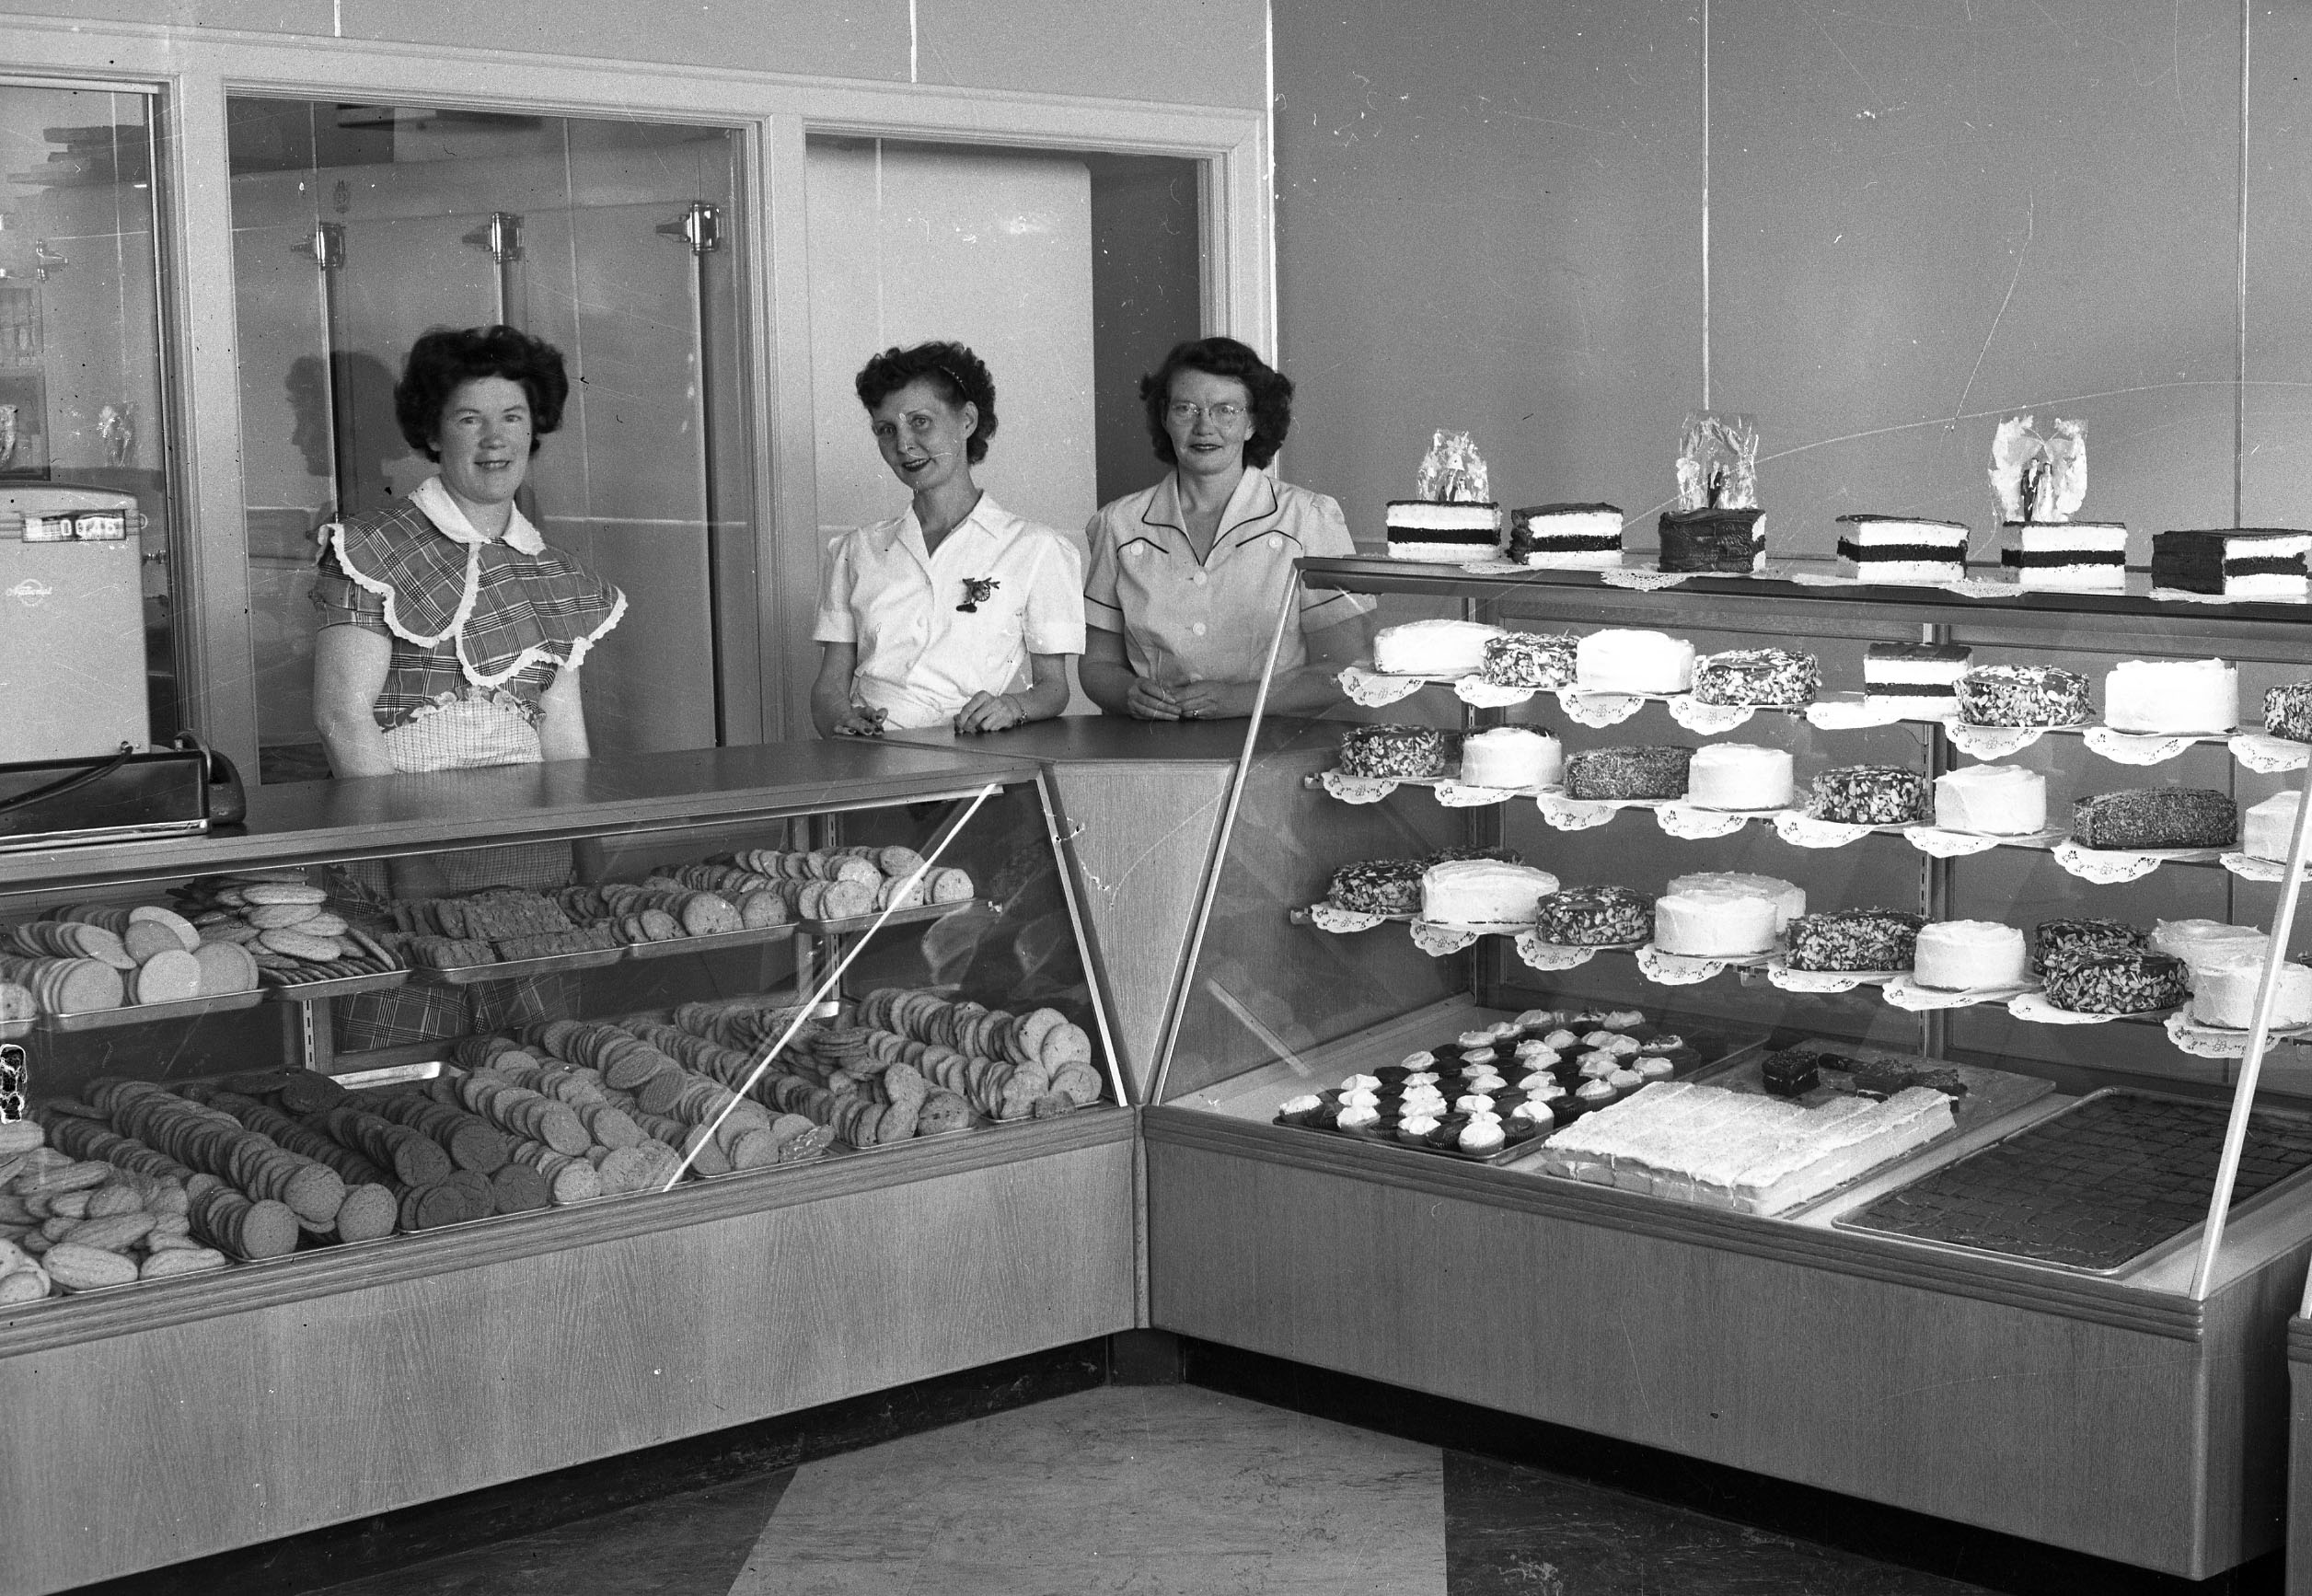 Dutch Girl Bakery